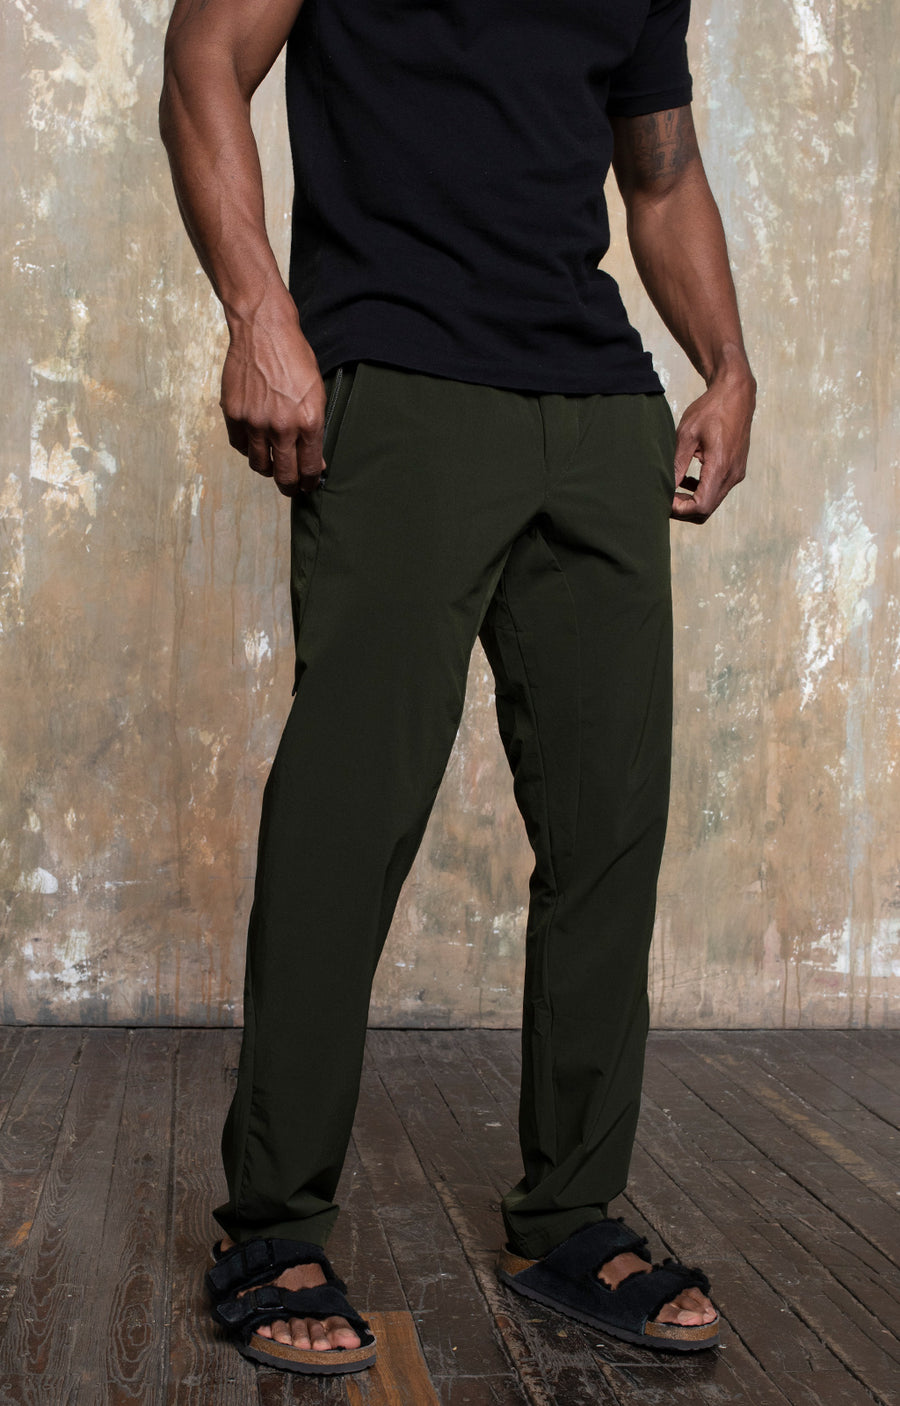 Warrior - Explorer Adventures Pants in Dark Green